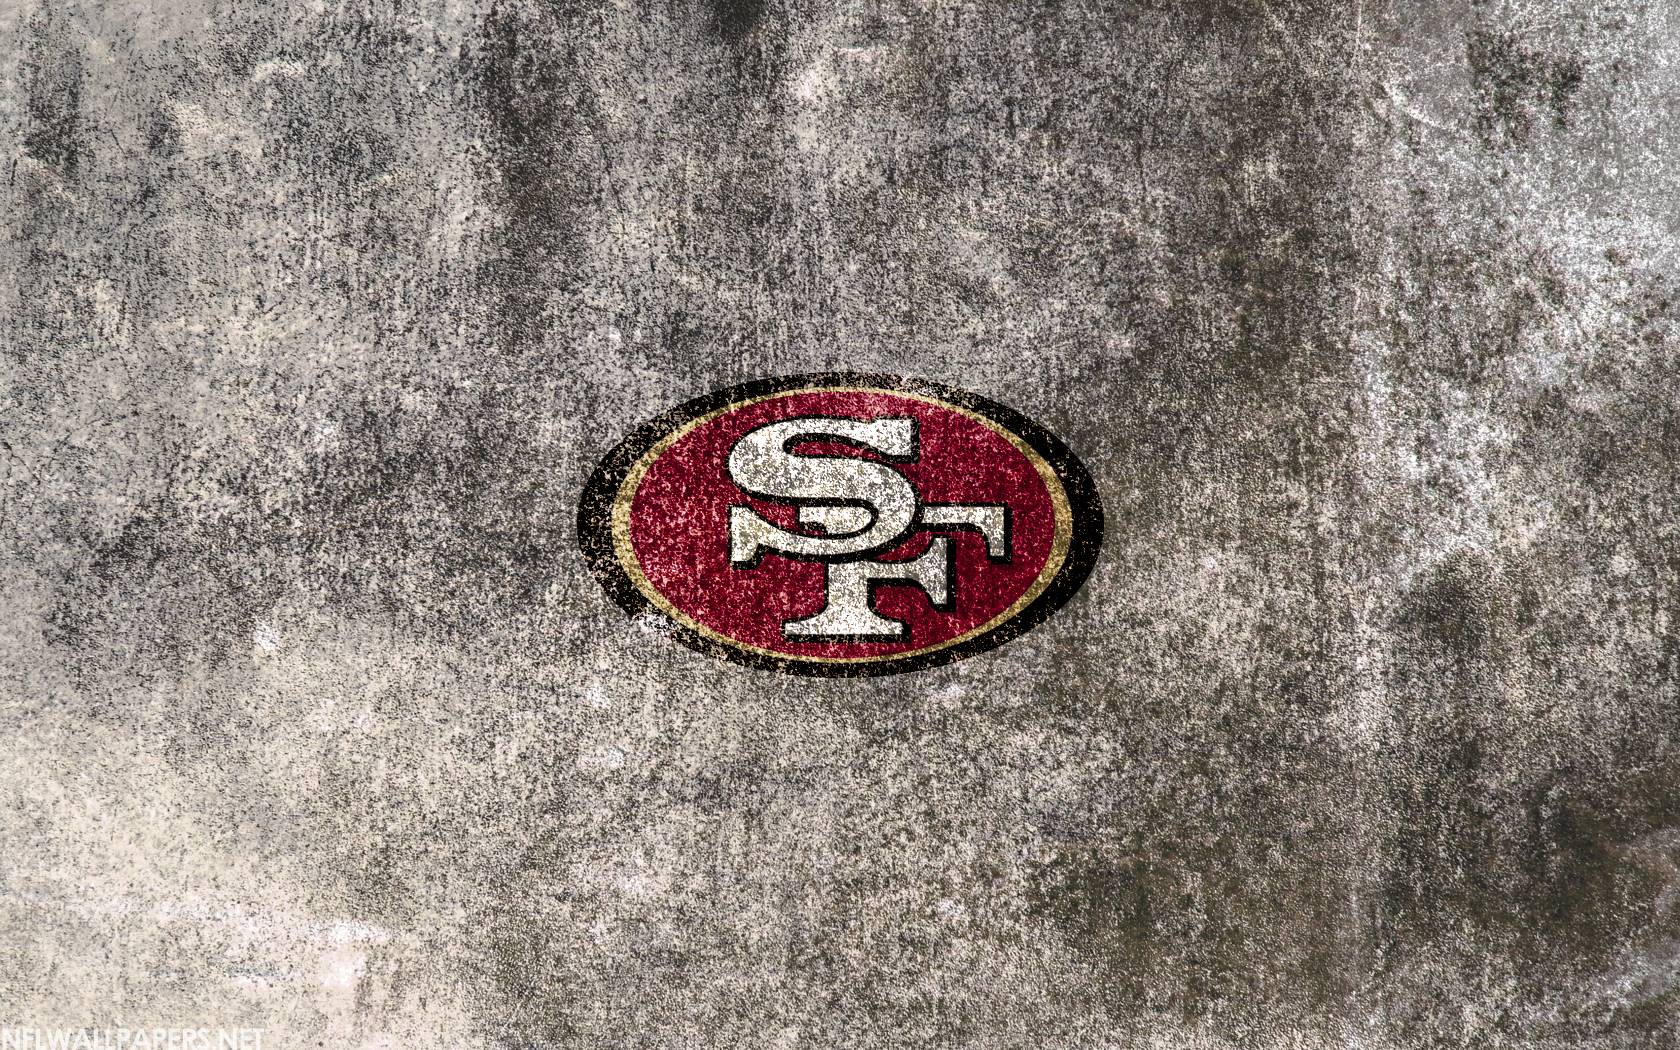 Pin Abstract 49ers Wallpaper Download The Free on Pinterest